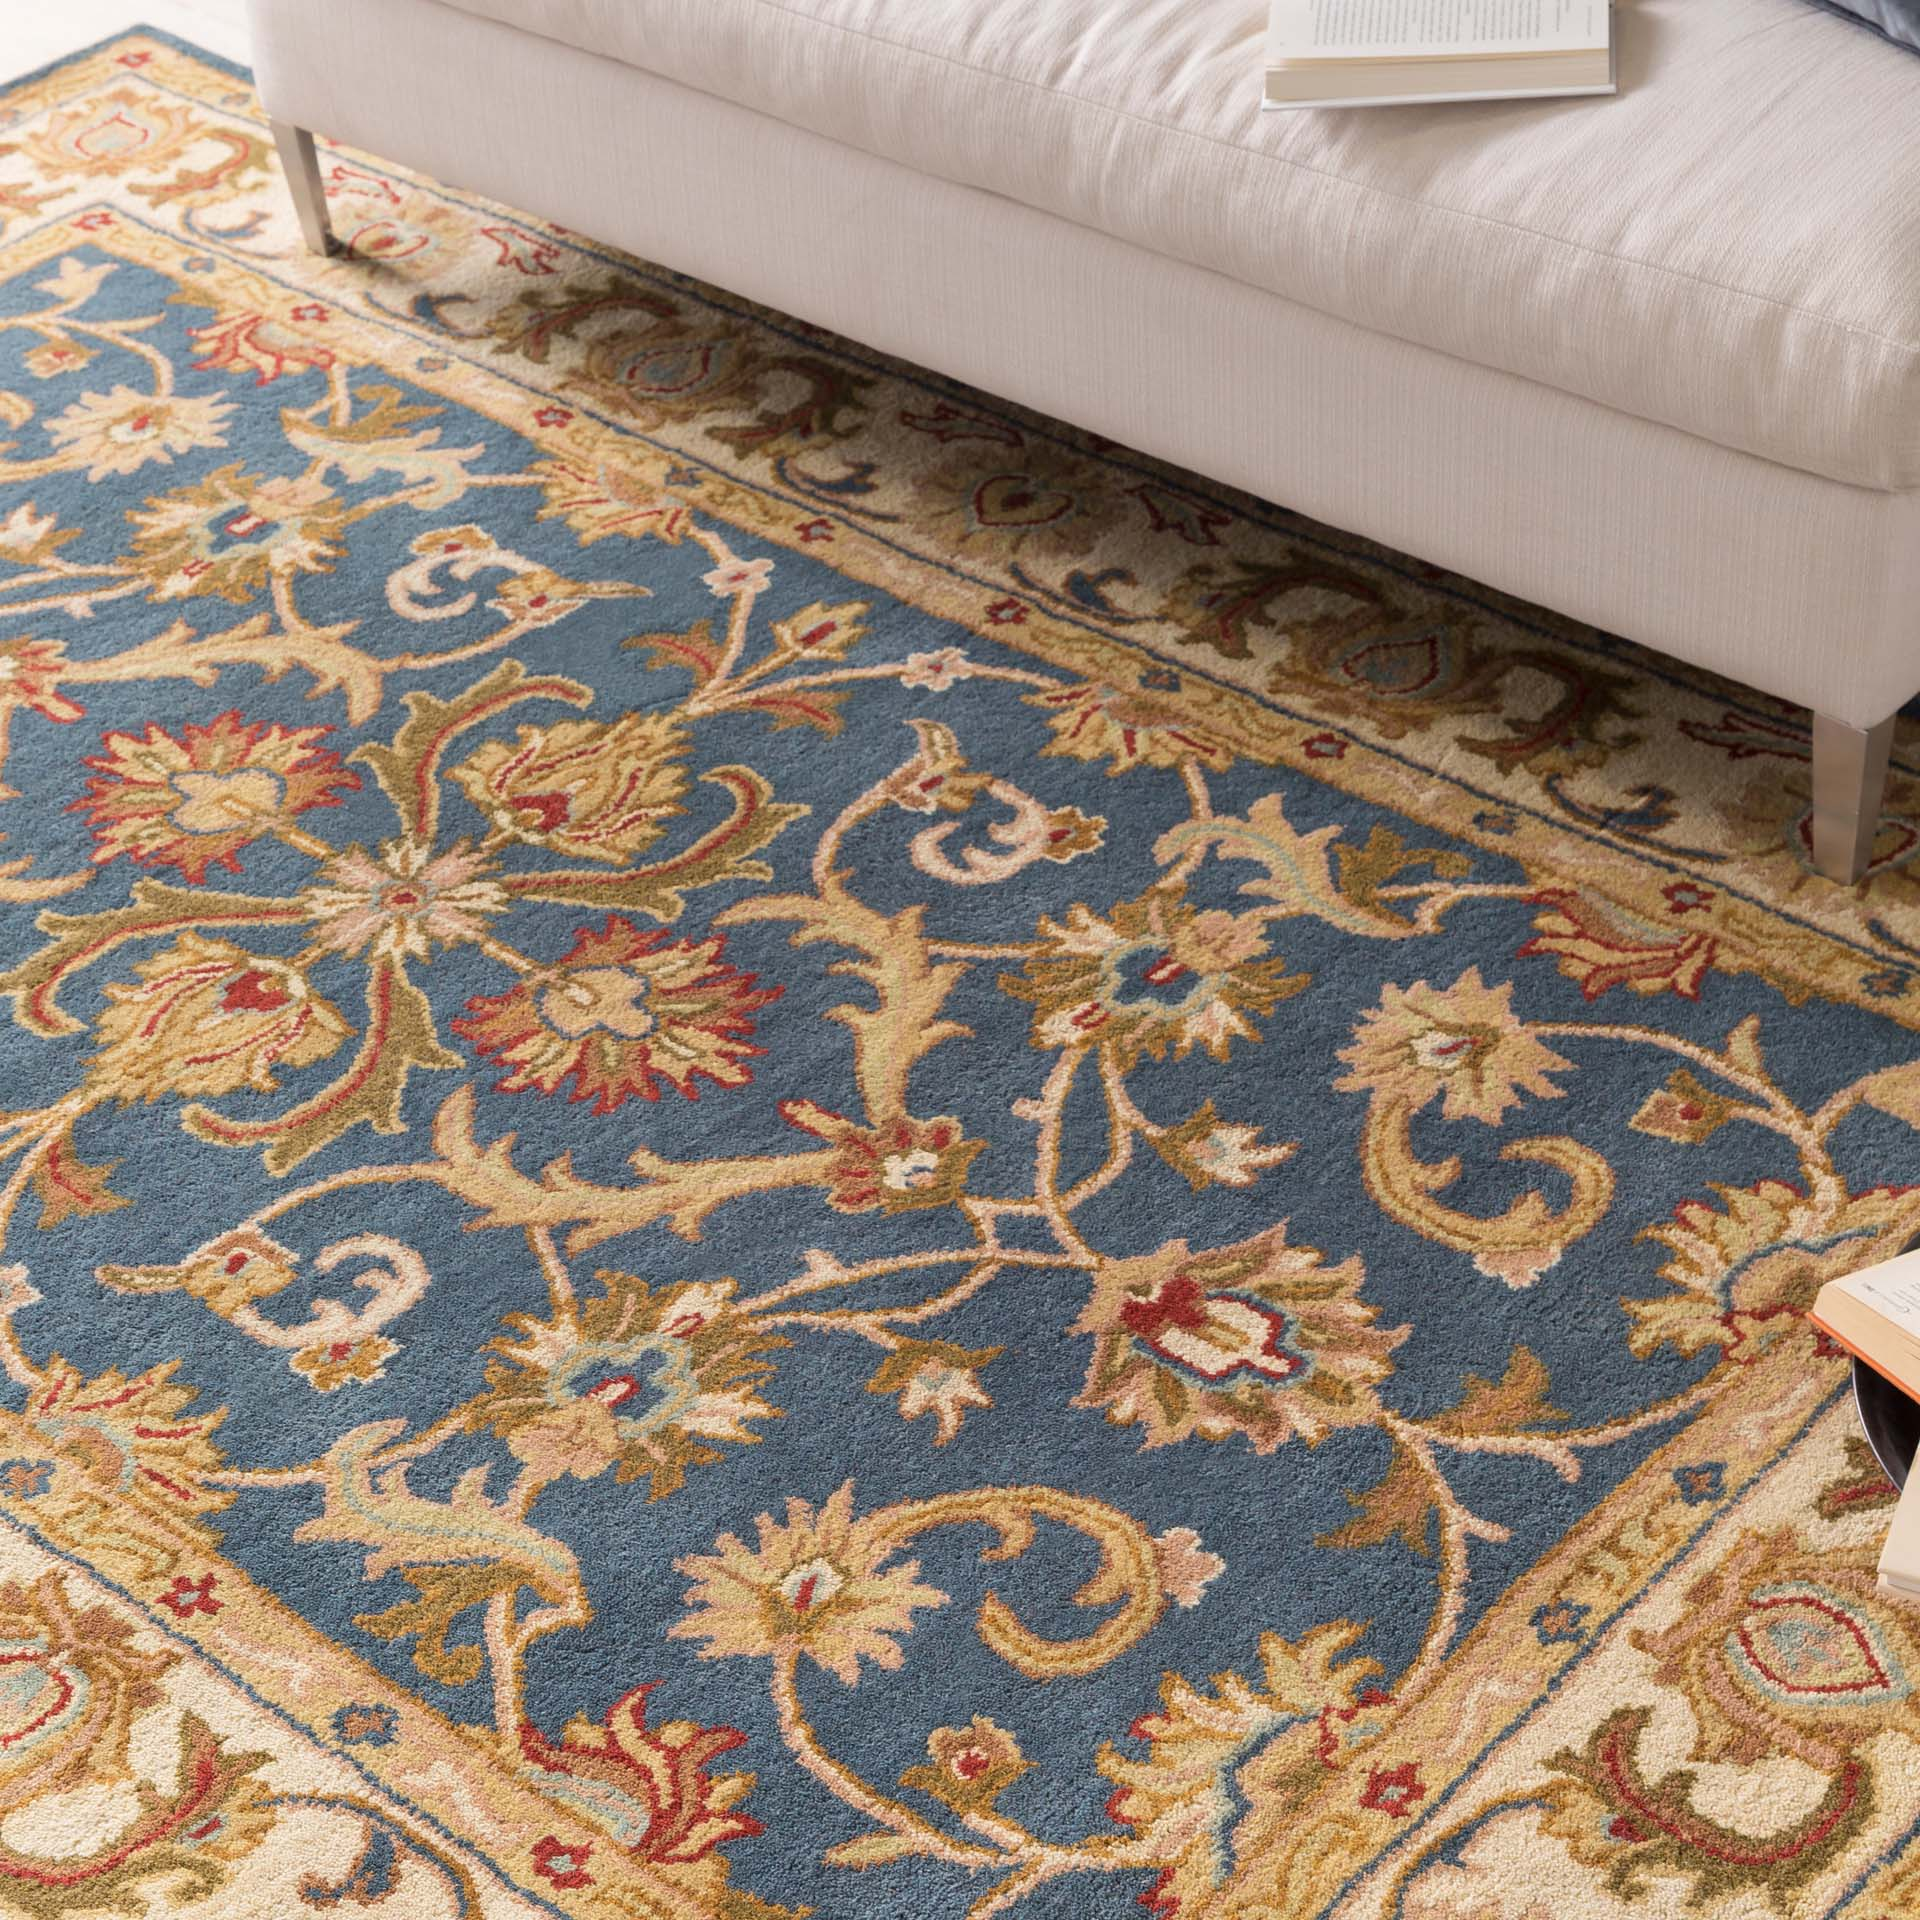 Classic hand-tufted area rug from India with cream, blue and red accents - Close up Shot